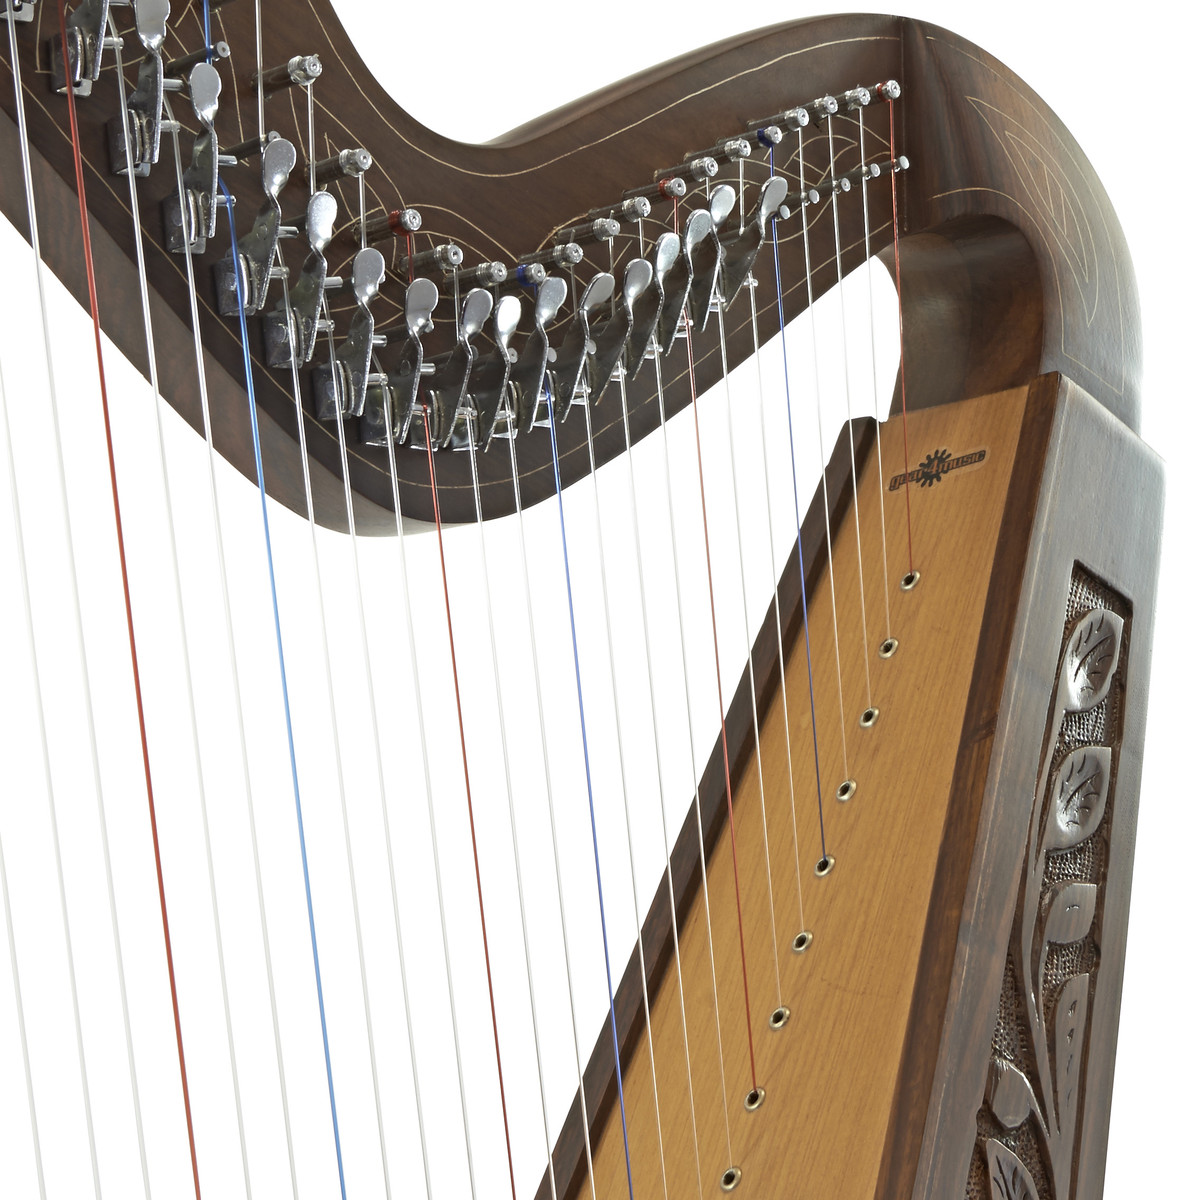 36 String Irish Harp with Levers by Gear4music